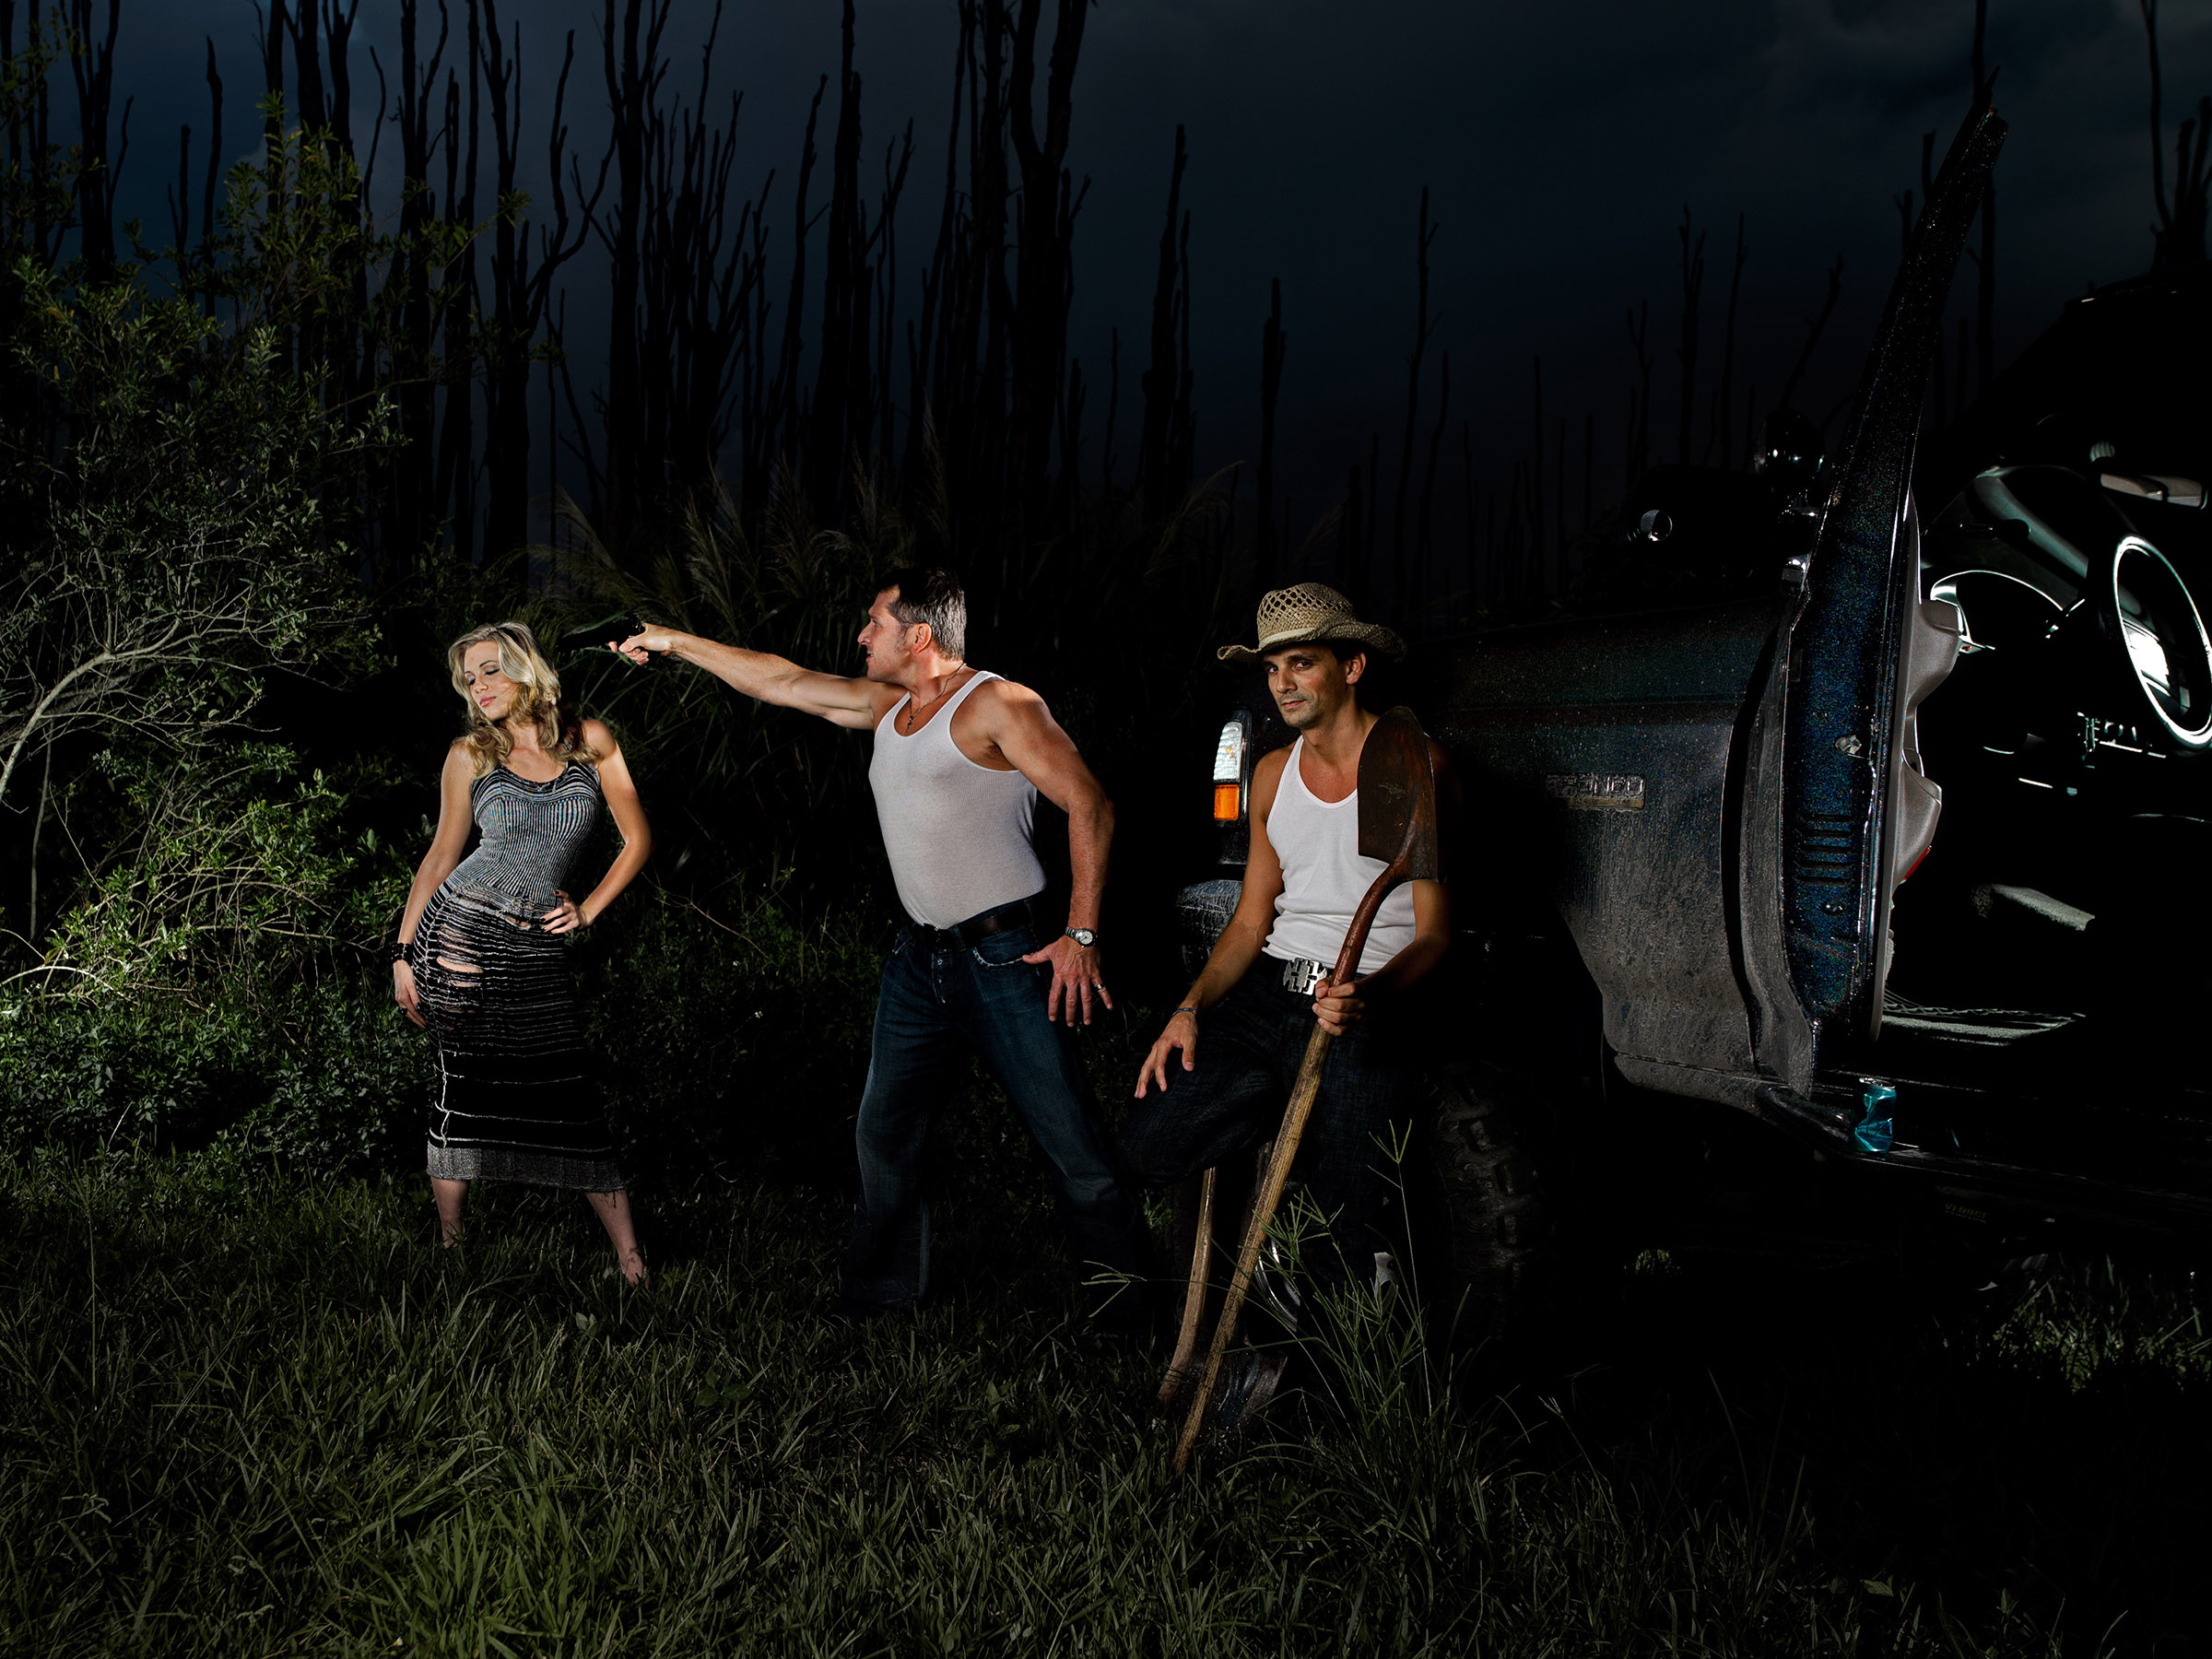 Murder in the Everglades dark drug night by Wick Beavers Photographer editorial conceptual Fine art Photography in NYC LA and Berlin